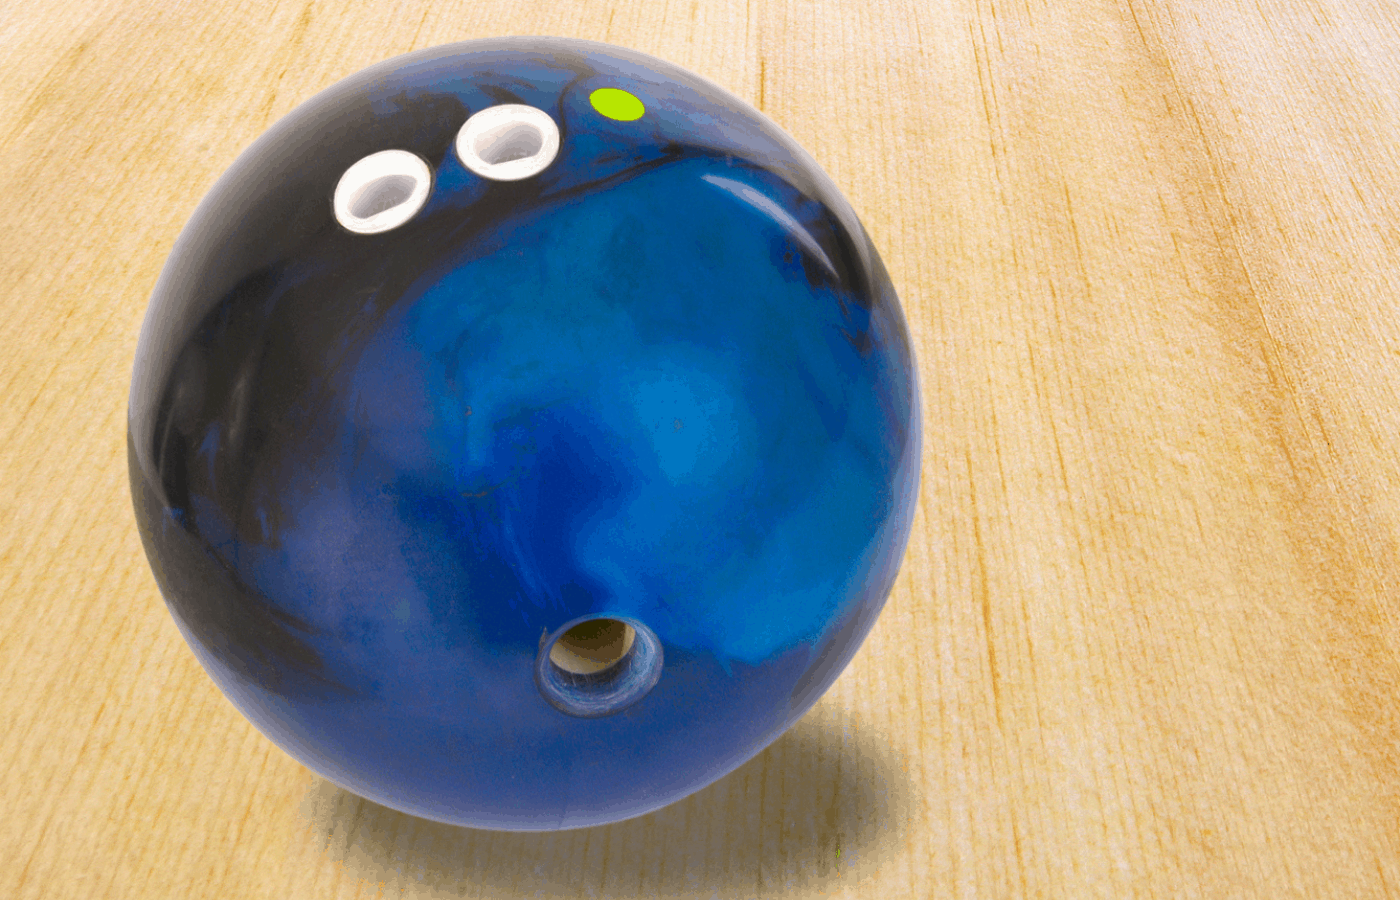 are bowling balls solid or hollow